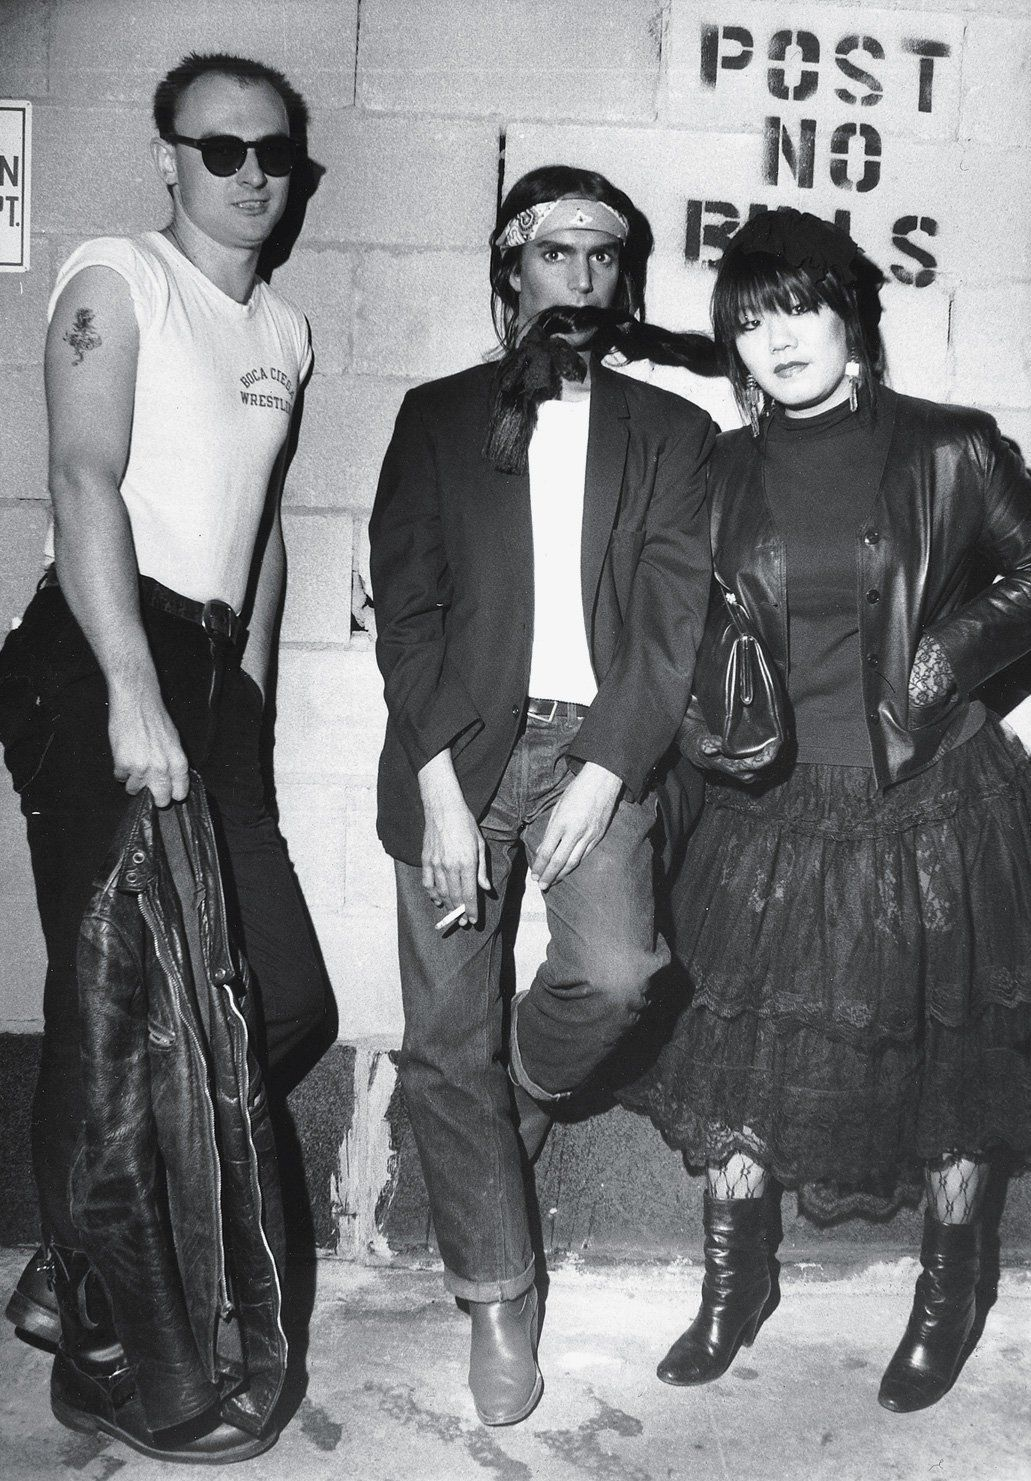 """Bill Cunningham took this picture of me [Anna Sui], Gordon Stevenson and  Steven Meisel (center) in the mid-'80s outside of the club CBGBs."